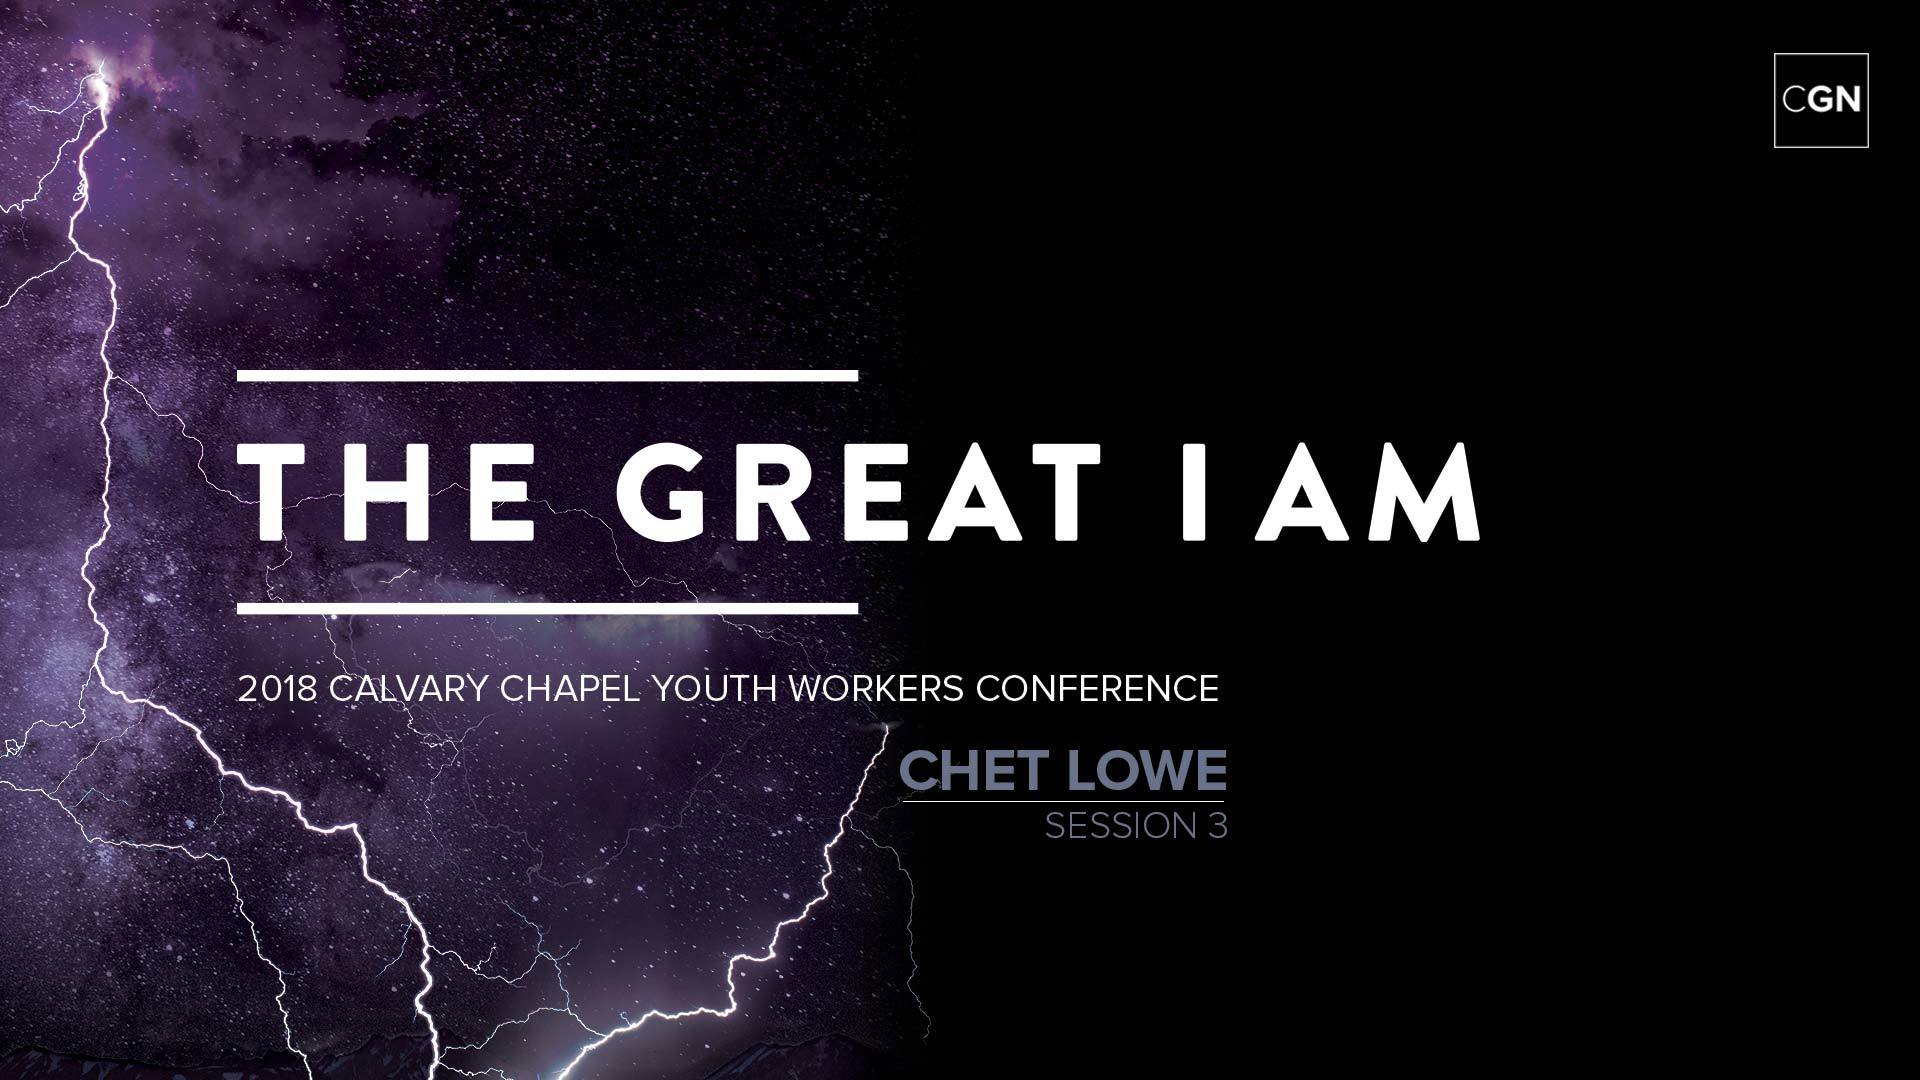 Chet Lowe - Session 3